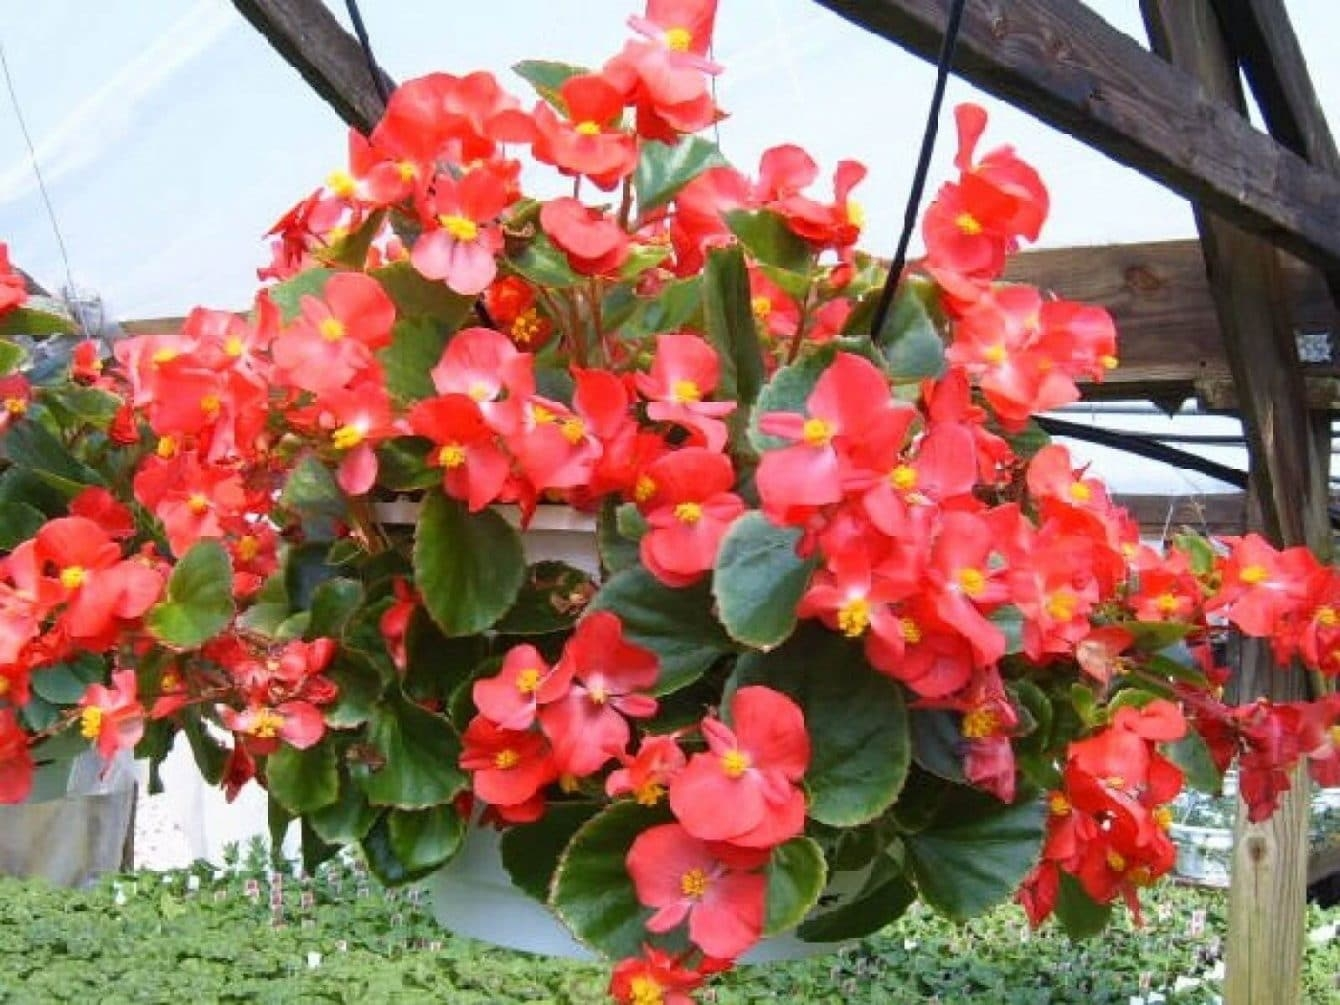 Wax Begonia Care Do Wax Begonias Like Sun Or Shade Hort Zone